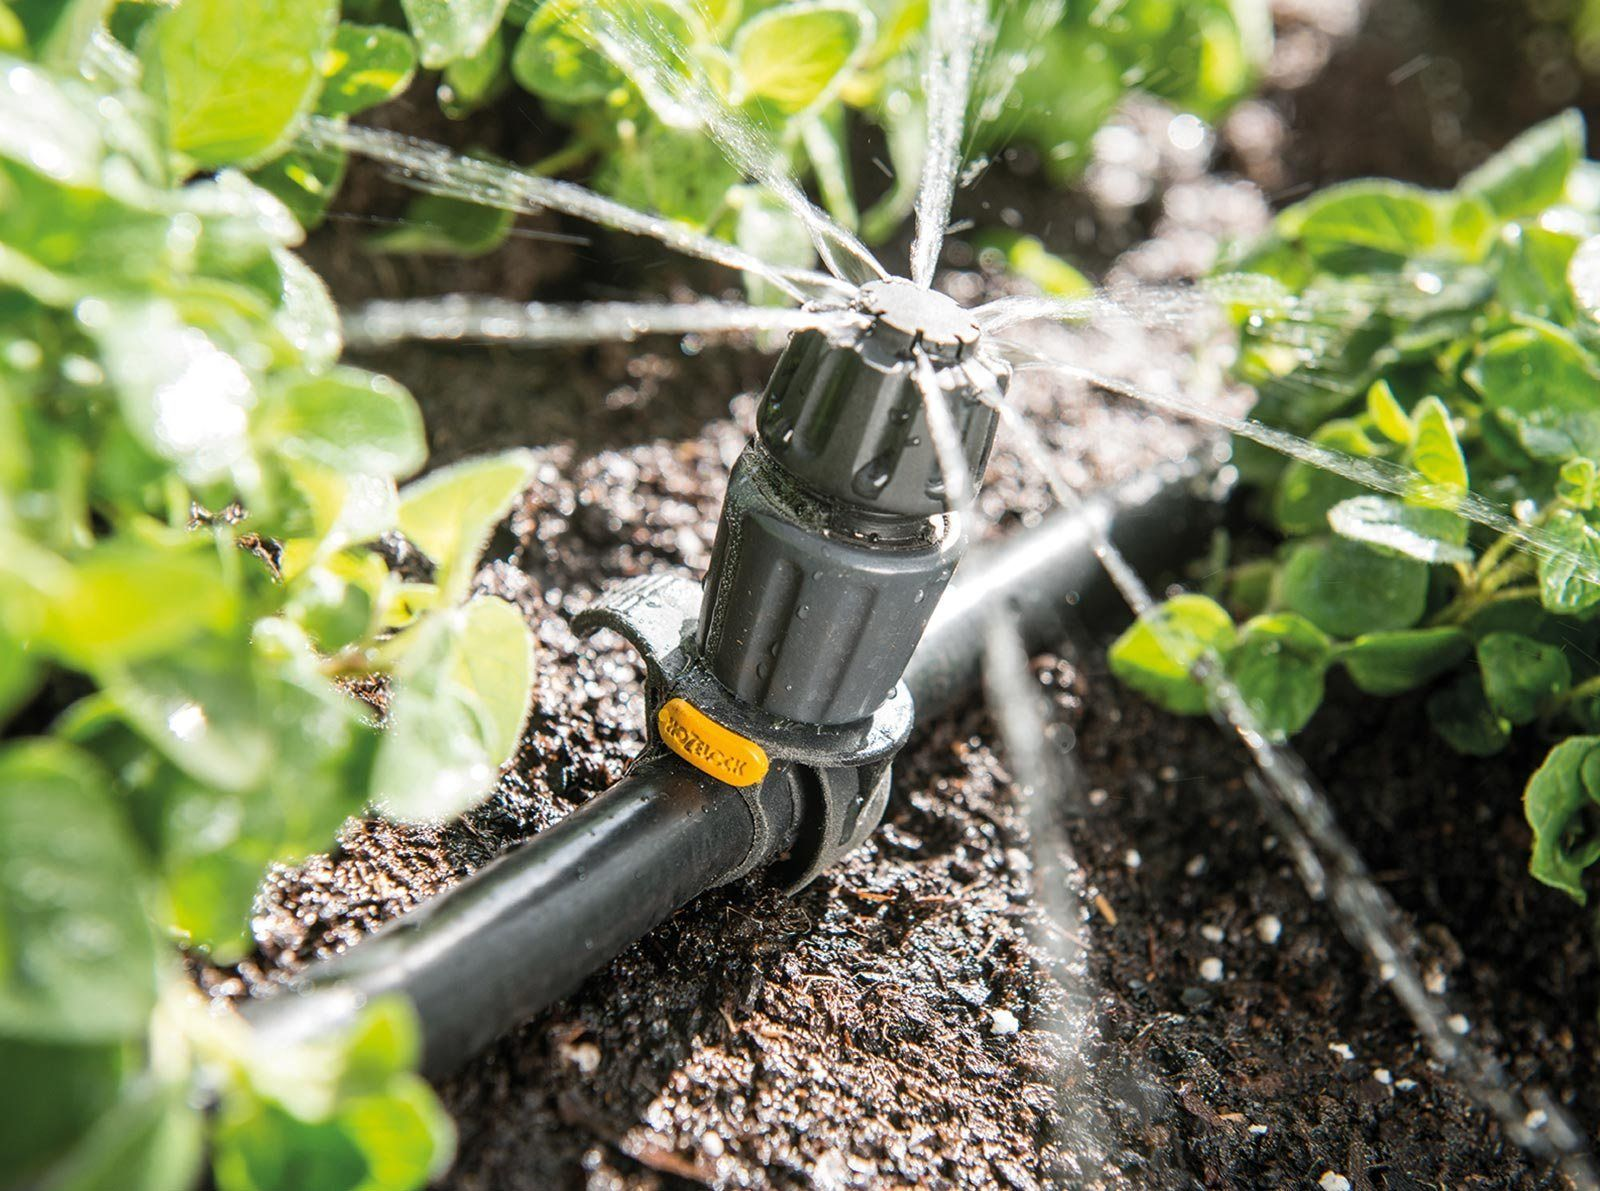 Choosing The Best Frugal Automatic Plant Watering System Is Probably One Of The Most Daunting Tasks Fo Plant Watering System Plants Automatic Watering System